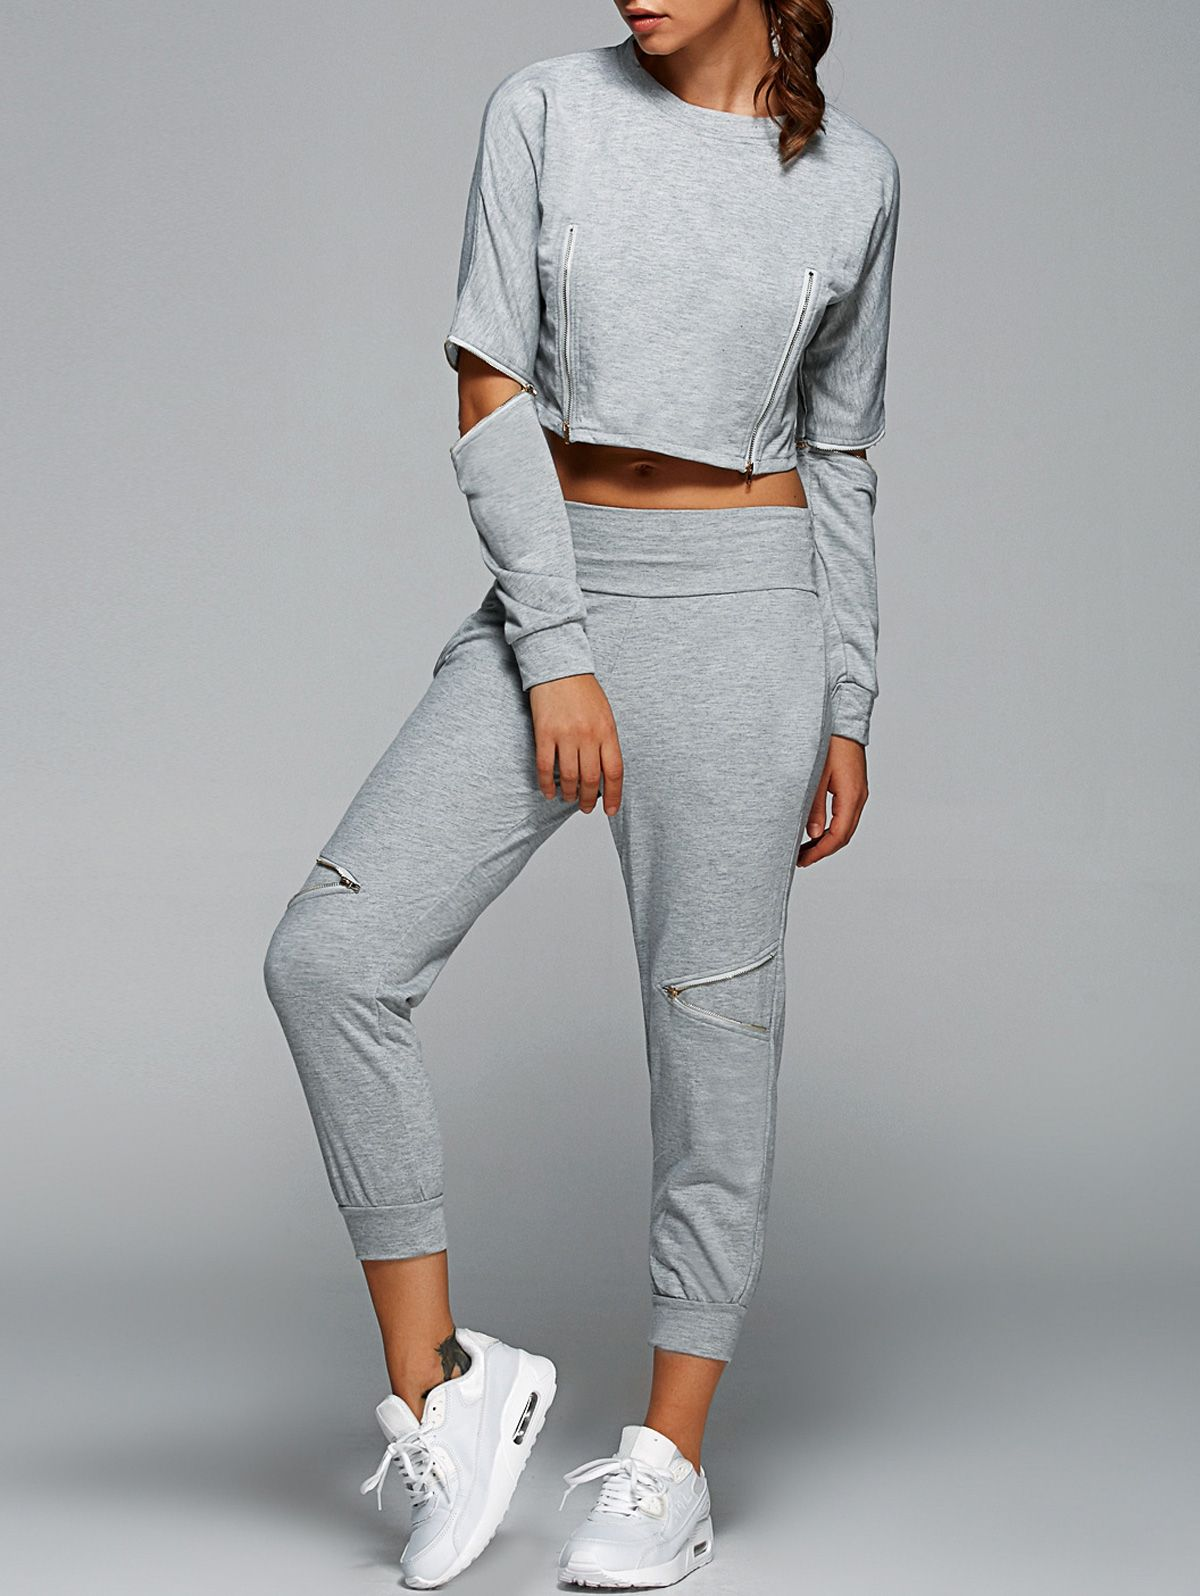 5ed595e848 Zipped Crop Sweatshirt and Pants - GRAY M